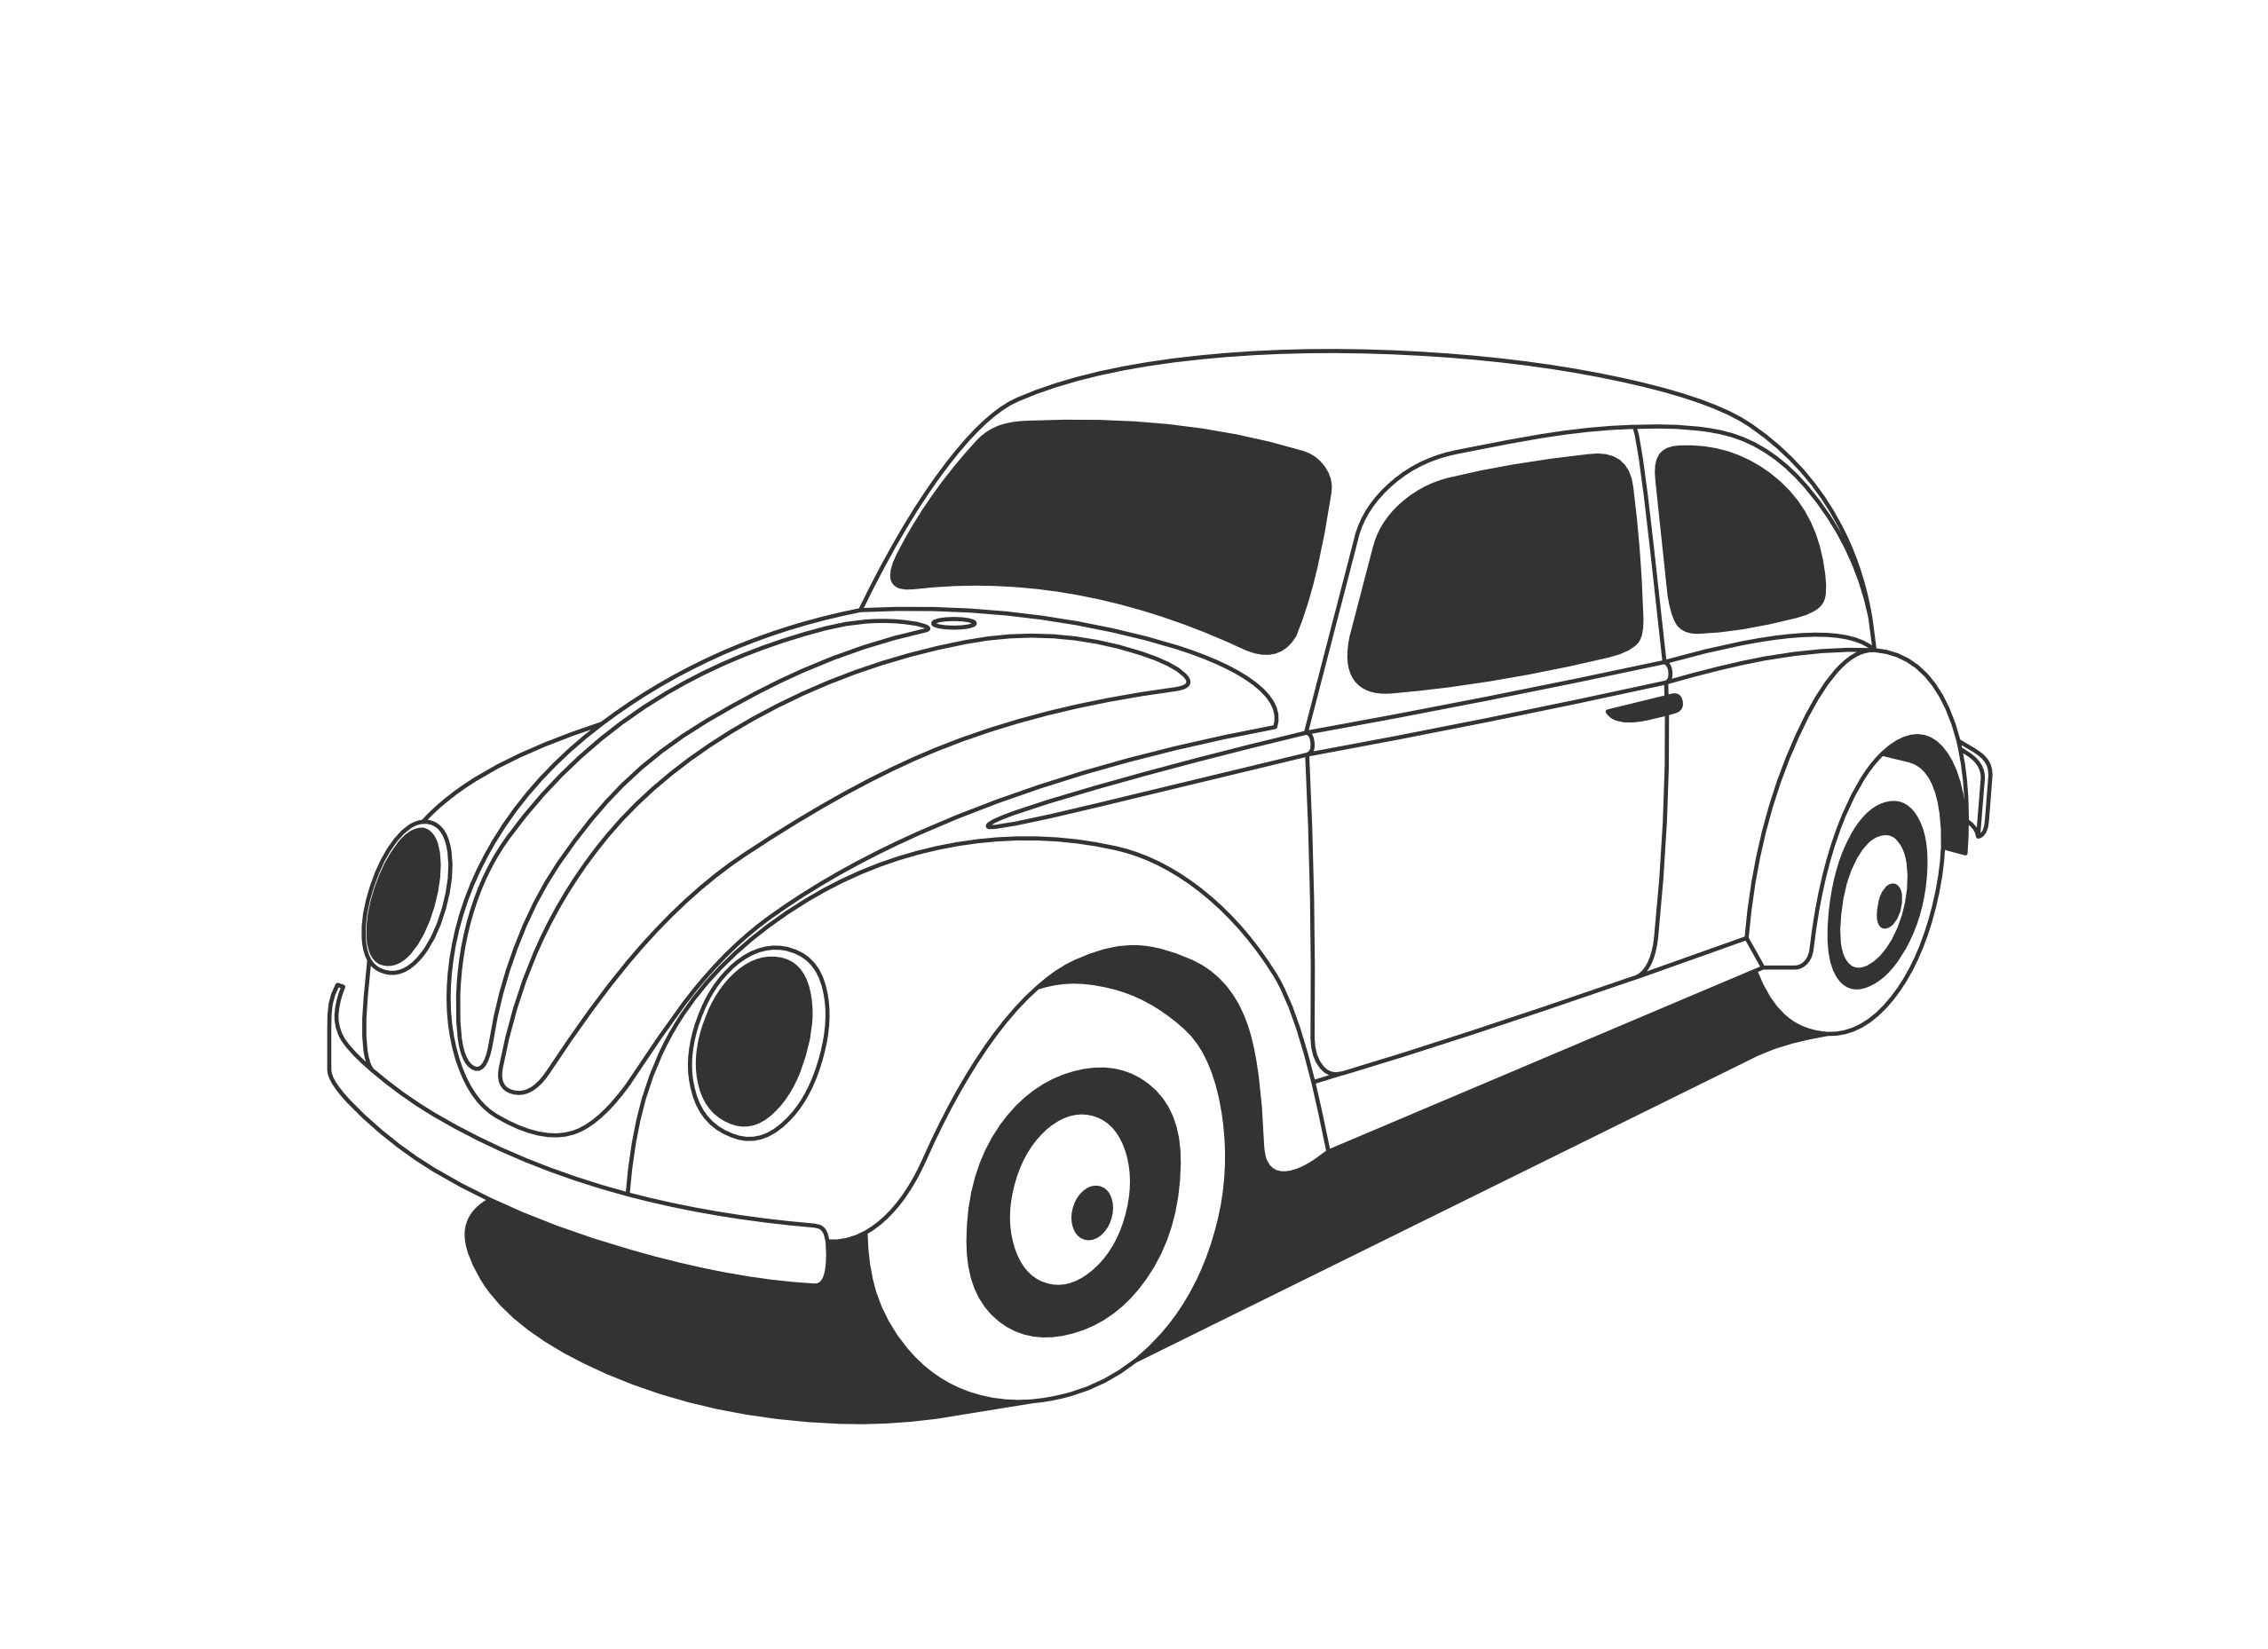 Vw Clipart 20 Free Cliparts